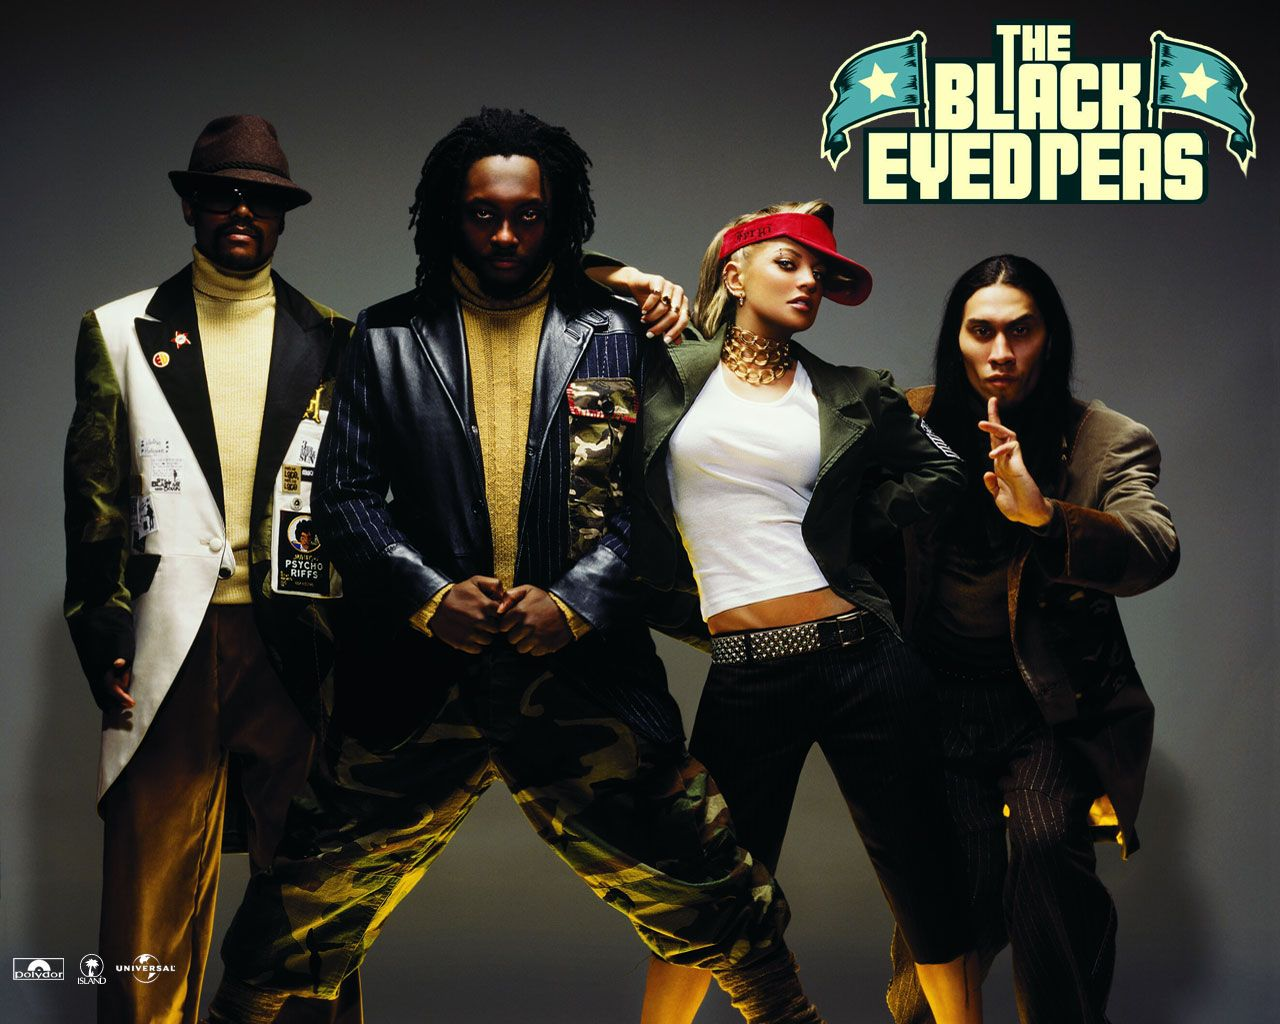 African american music group 90s or earlierthe black